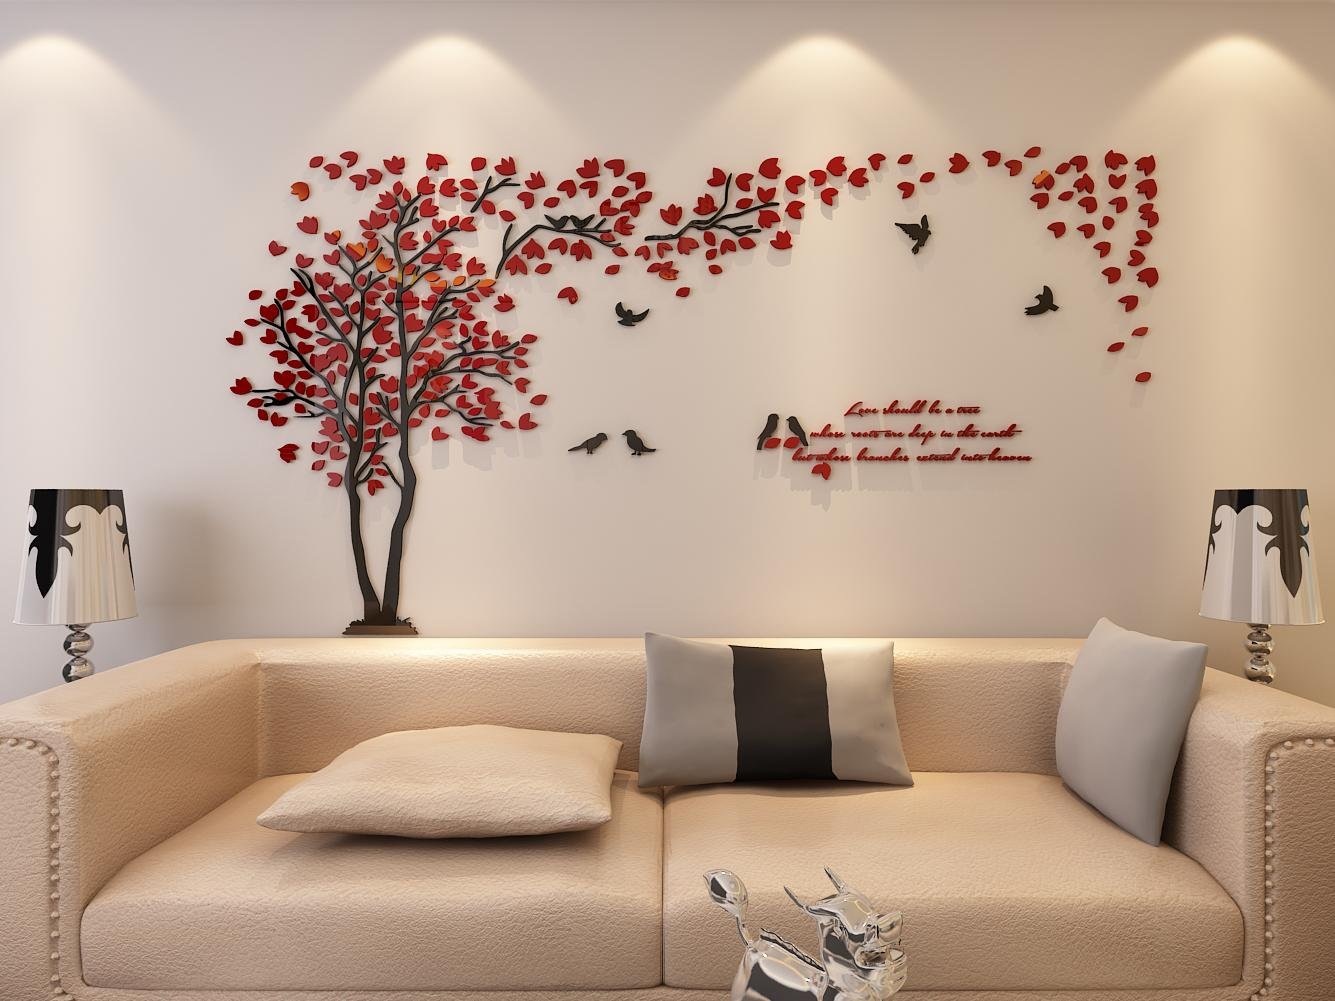 Living Room Background. Amazon com  3d Couple Tree Wall Murals for Living Room Bedroom Sofa Backdrop Tv Background Originality Stickers Gift DIY Decal Home Decor Art